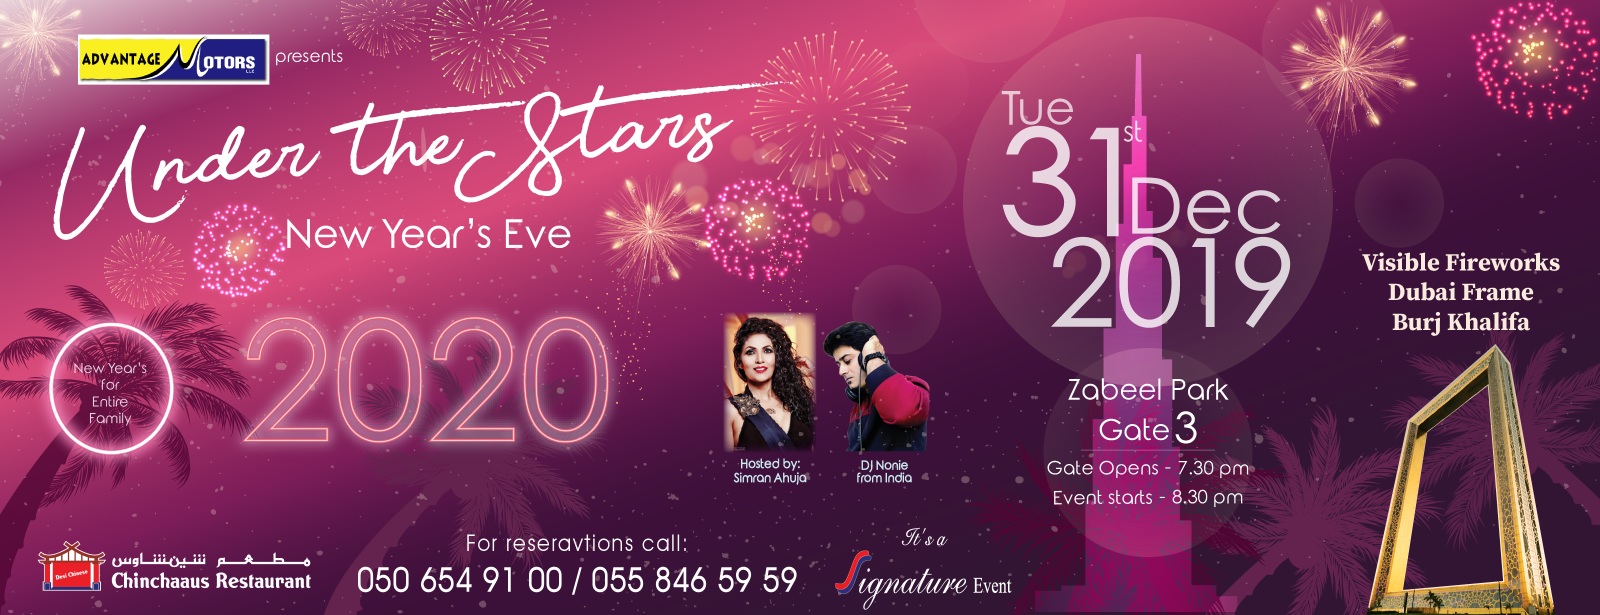 New Year's Eve Under the Stars at Zabeel Park Dubai